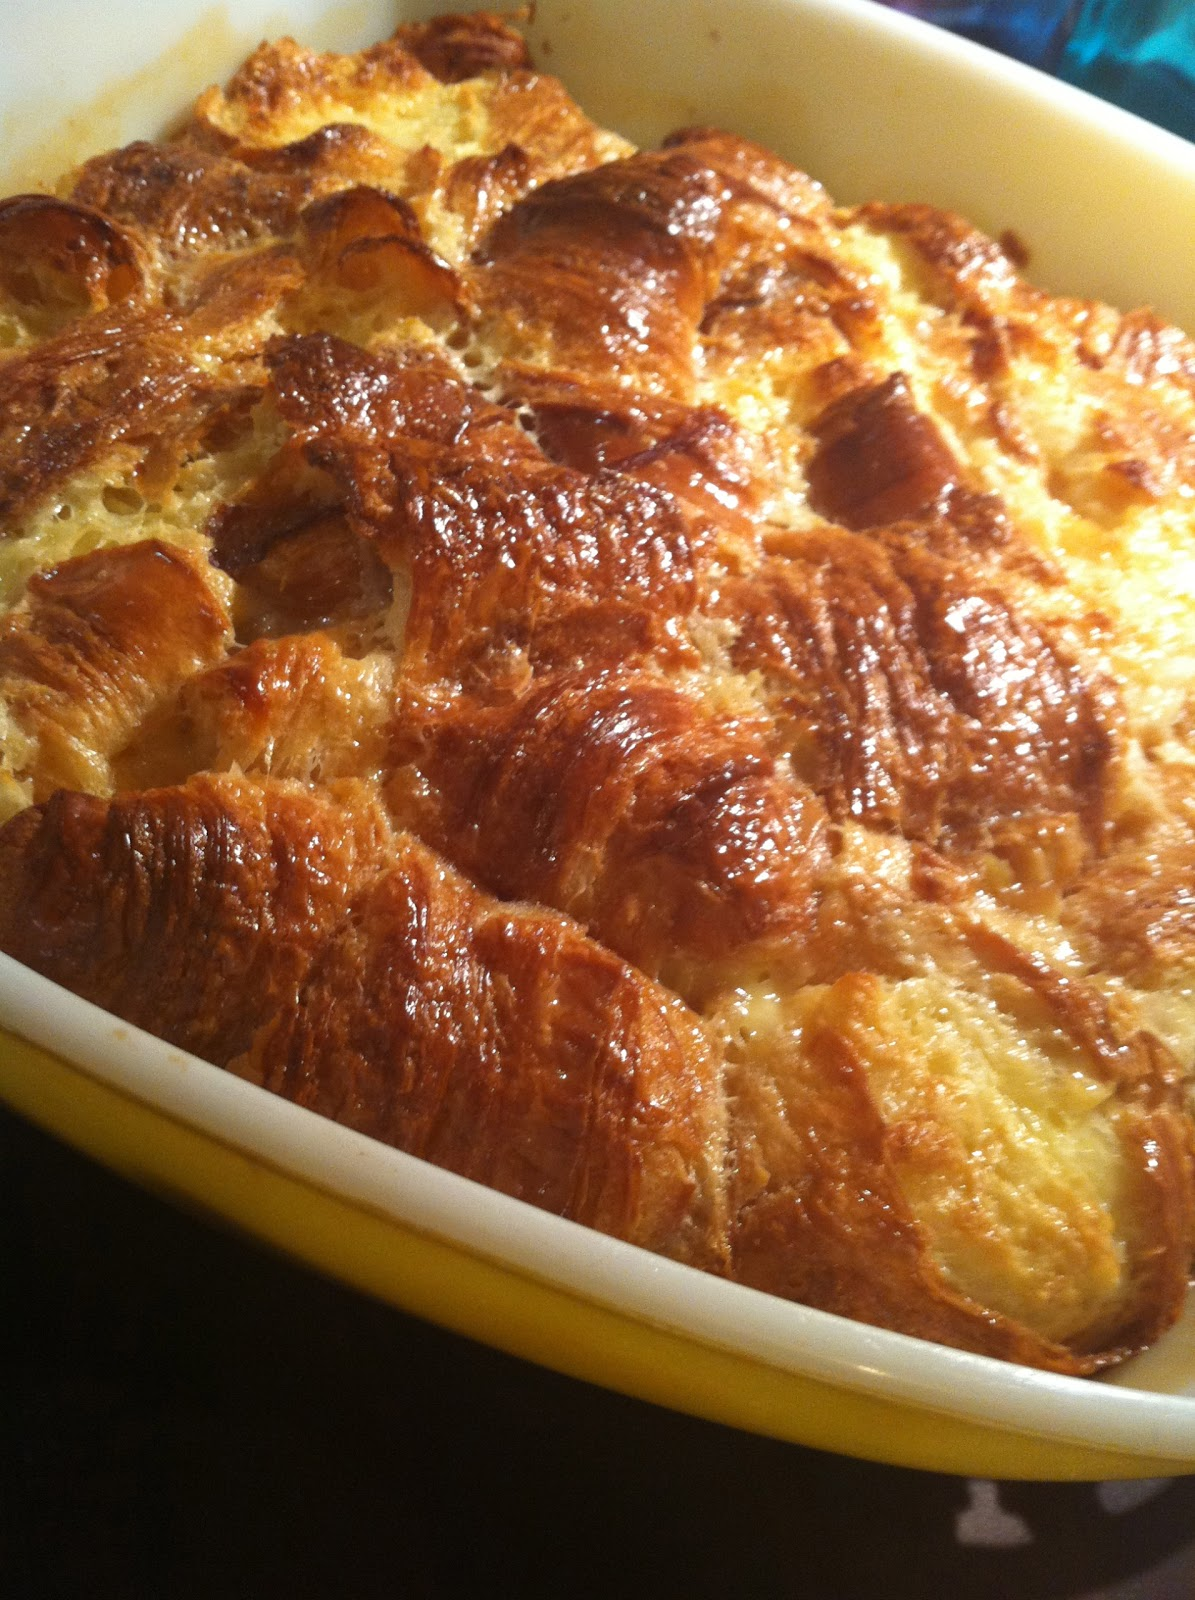 ... Housewife's Kitchen: Nigella Lawson's Caramel Croissant Pudding